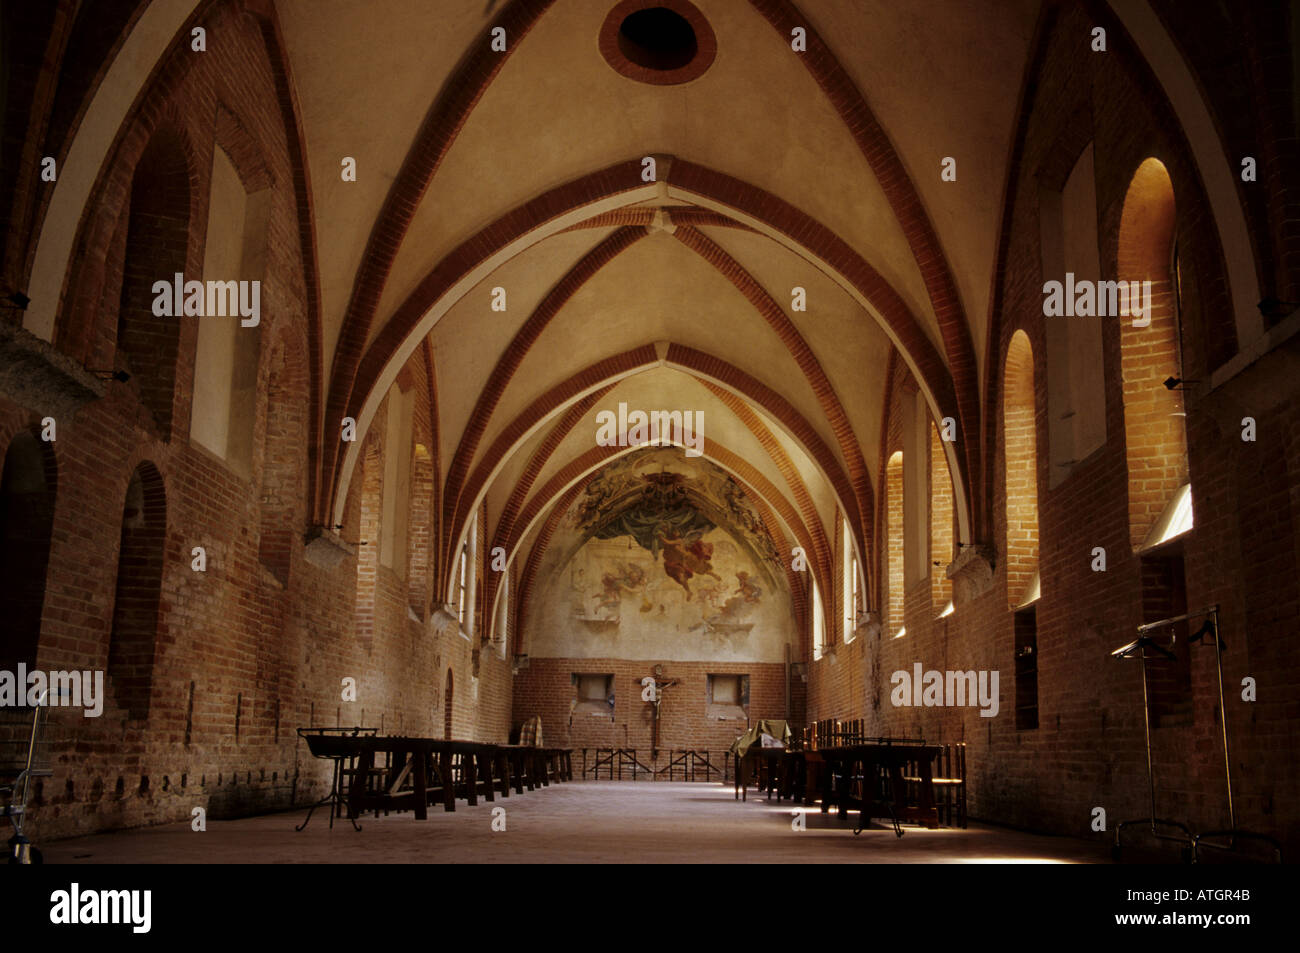 A chapel in the Chiaravalle abbey, Milan province - Stock Image